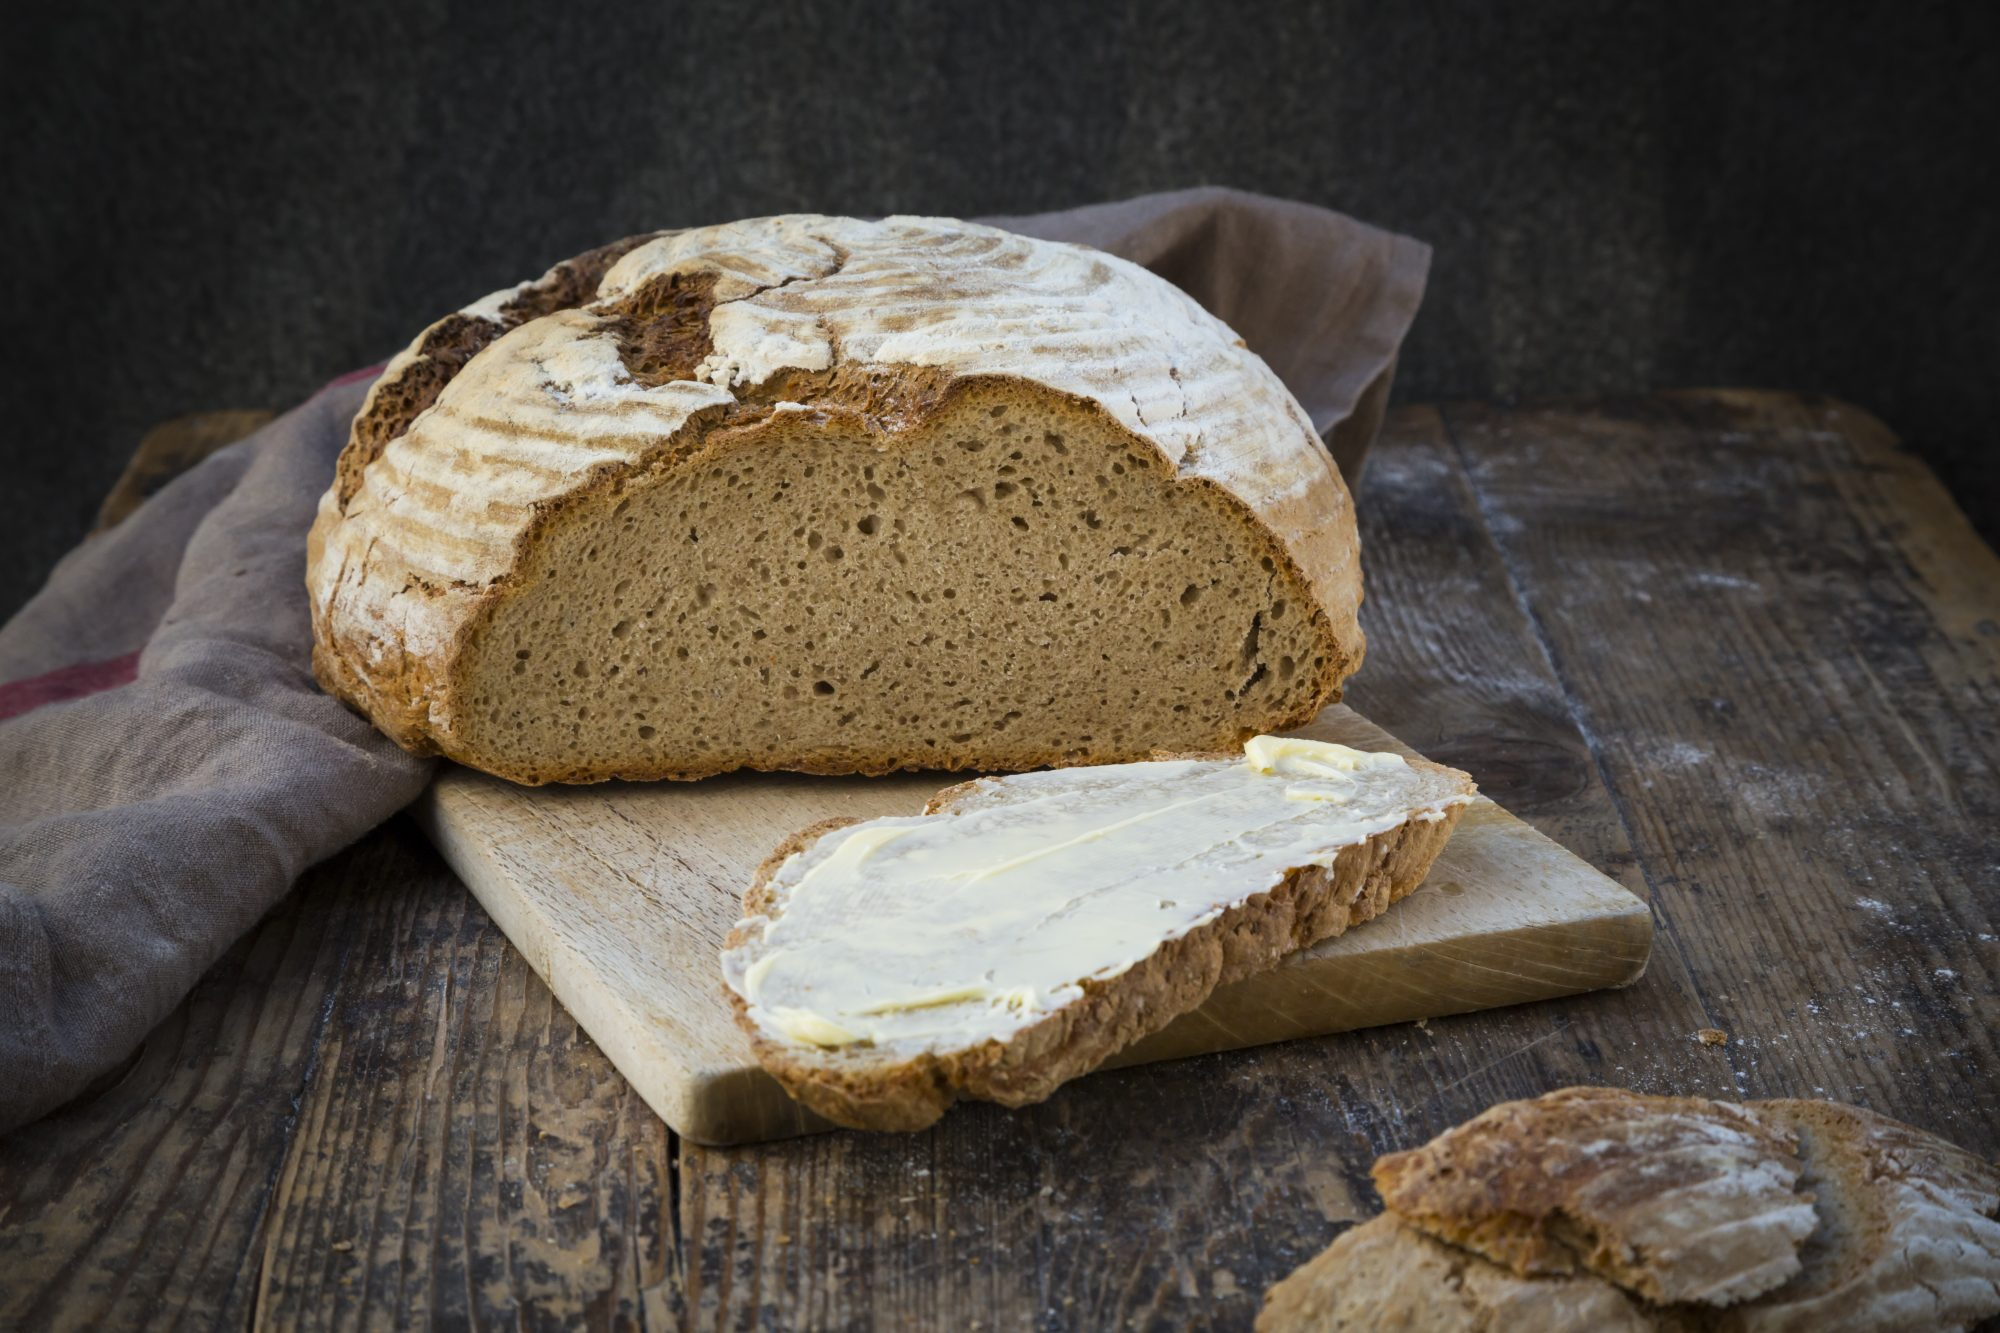 How To Make the Best Bakery-Style Bread at Home